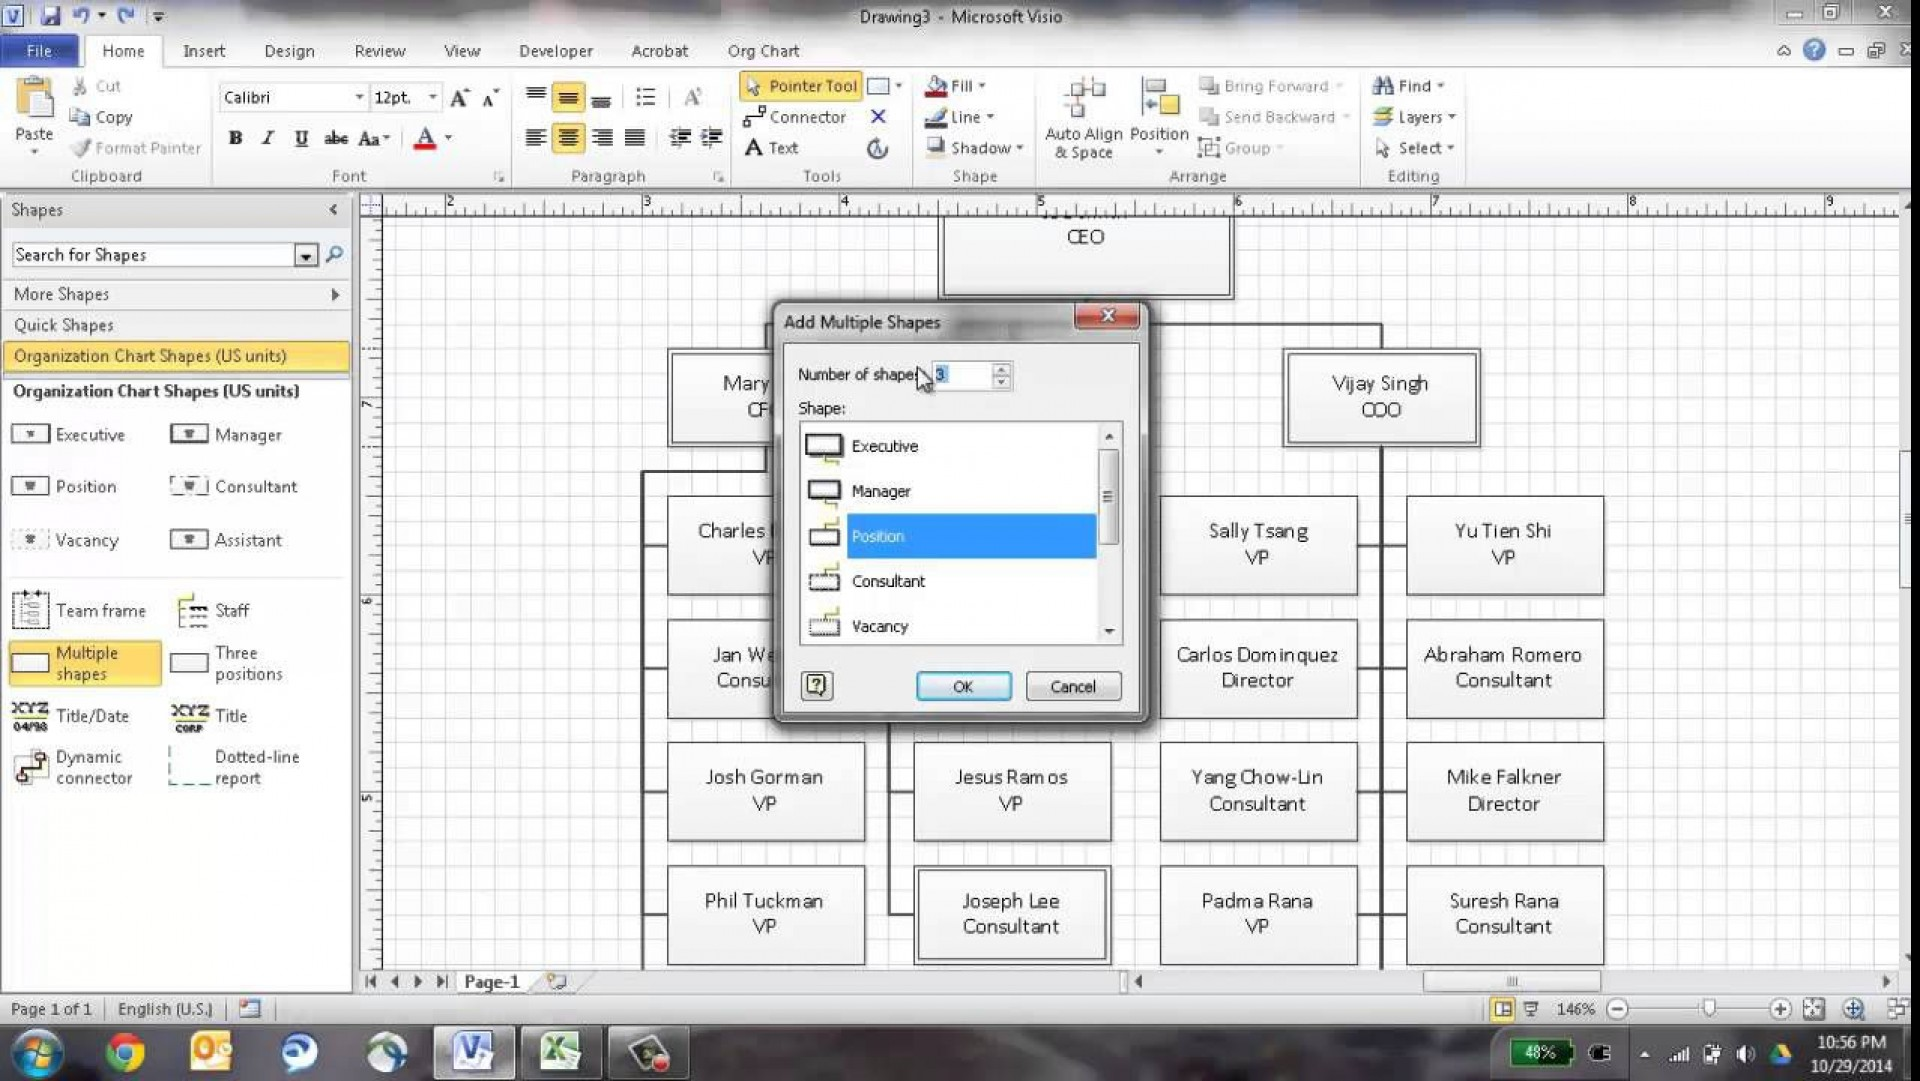 001 Excellent Microsoft Visio Org Chart Shape Example  Shapes1920